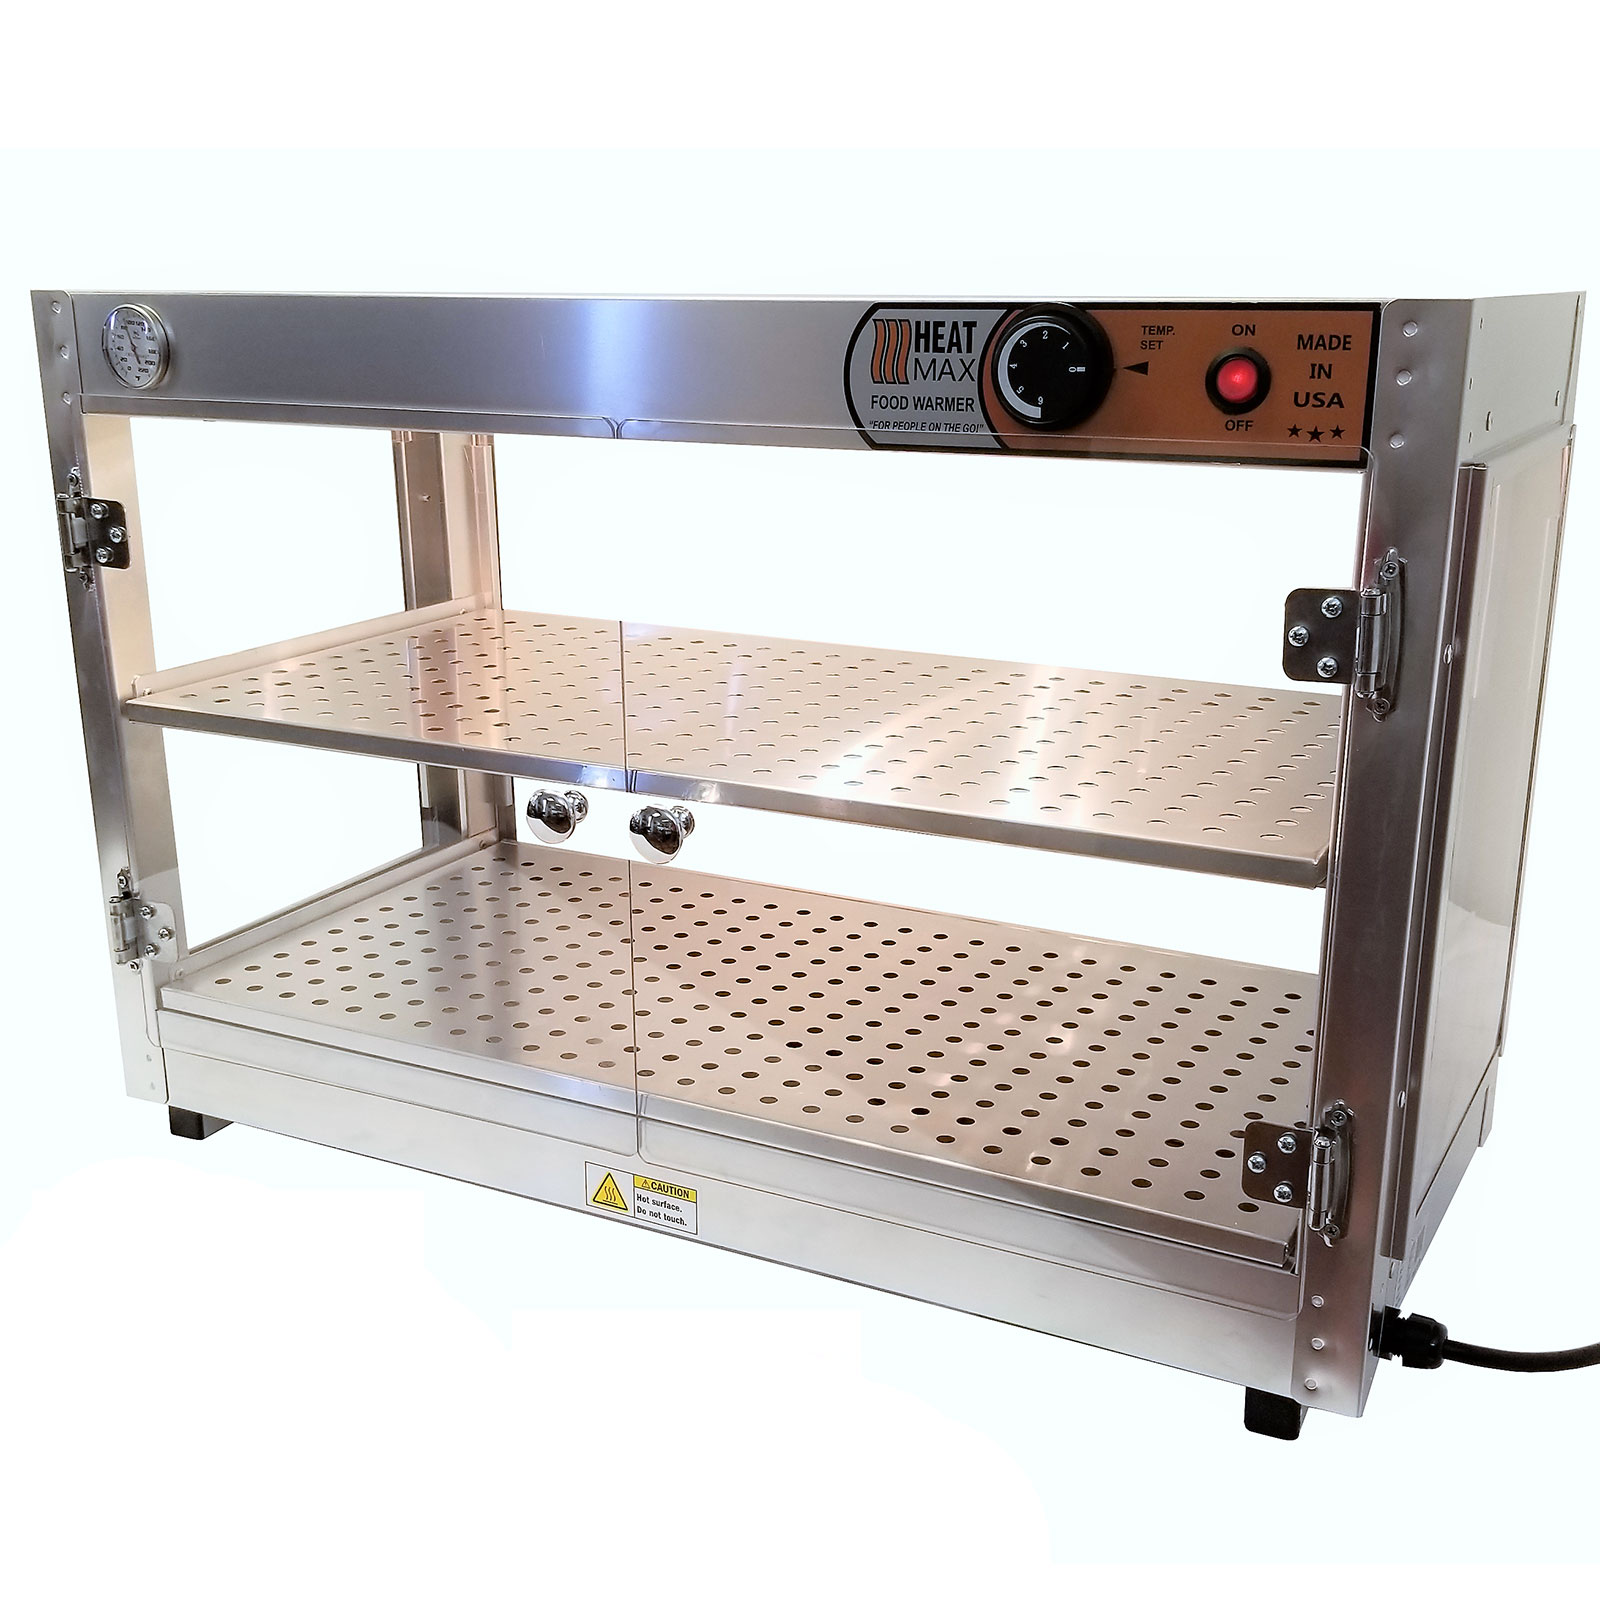 HeatMax Commercial Countertop Food Warmer Display Case With Water Tray 30x15x20